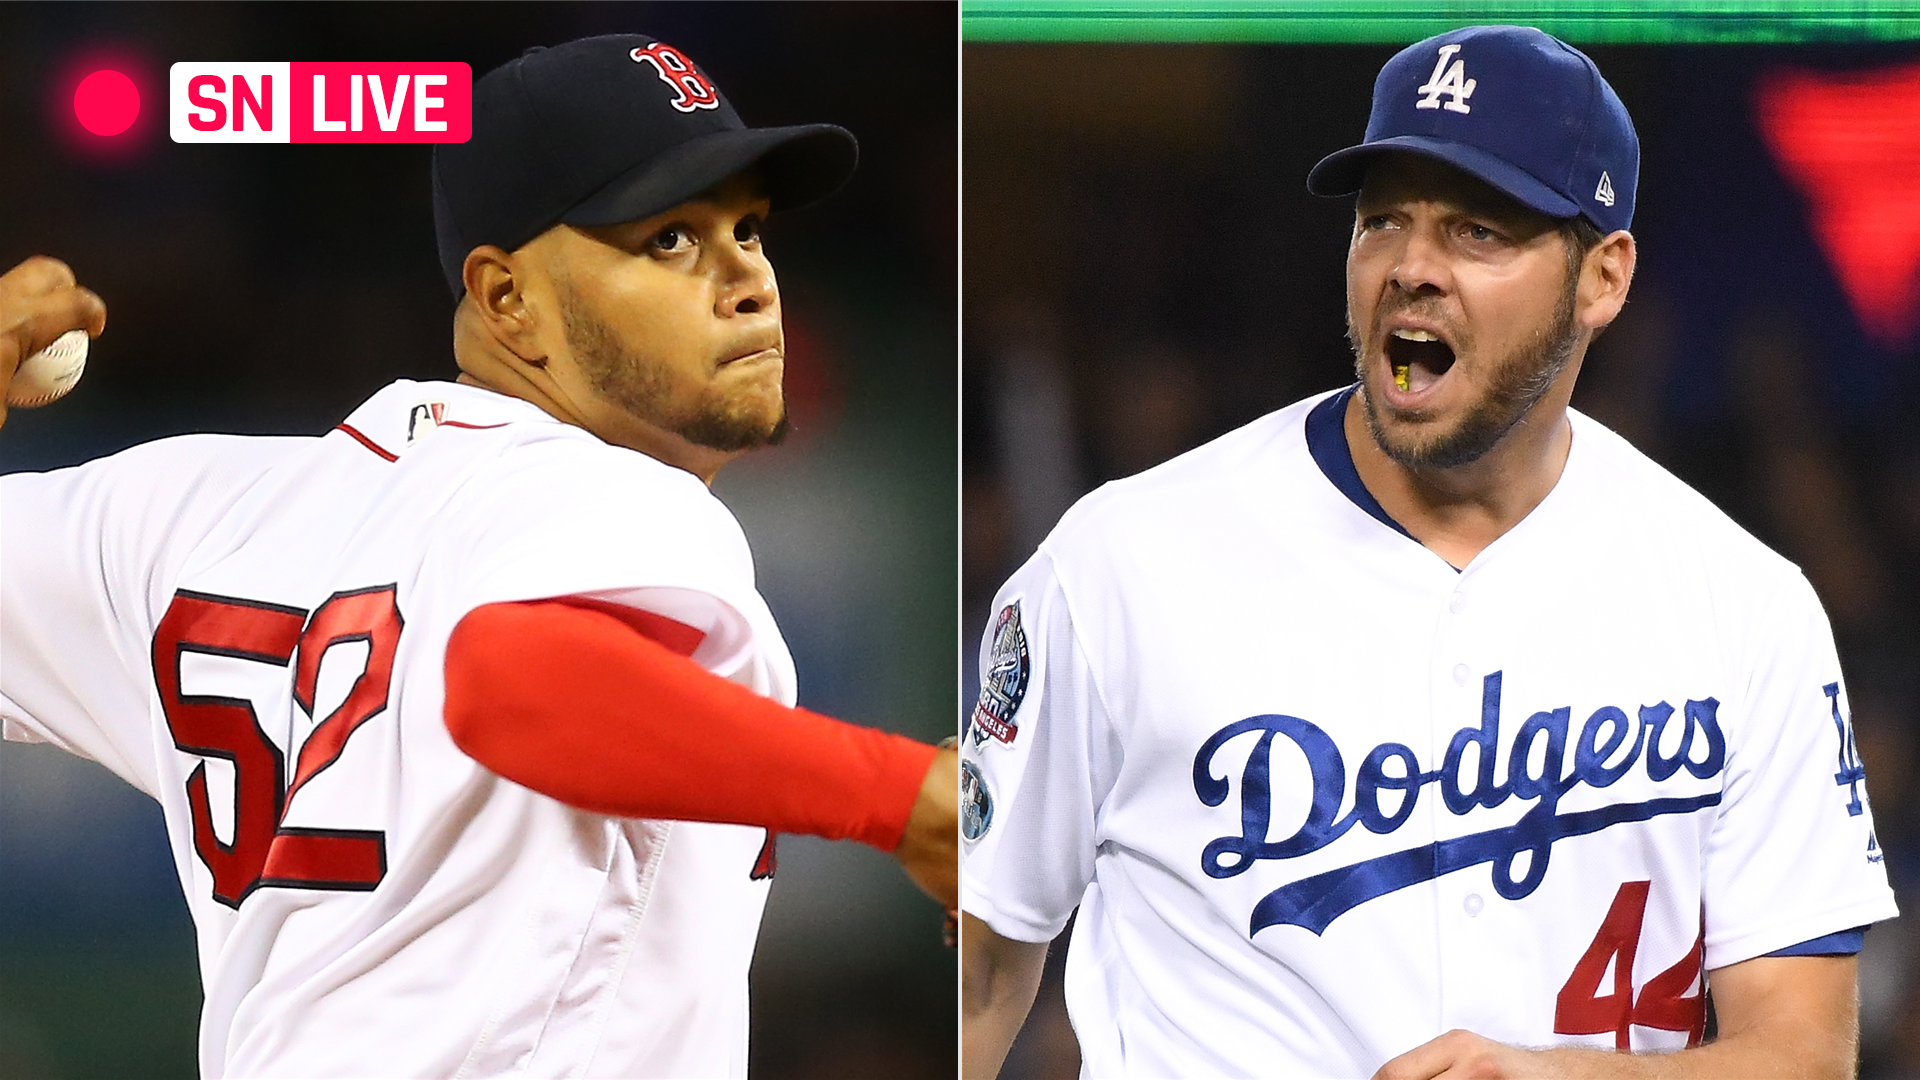 World Series 2018: Red Sox vs. Dodgers score, highlights, updates from Game 4